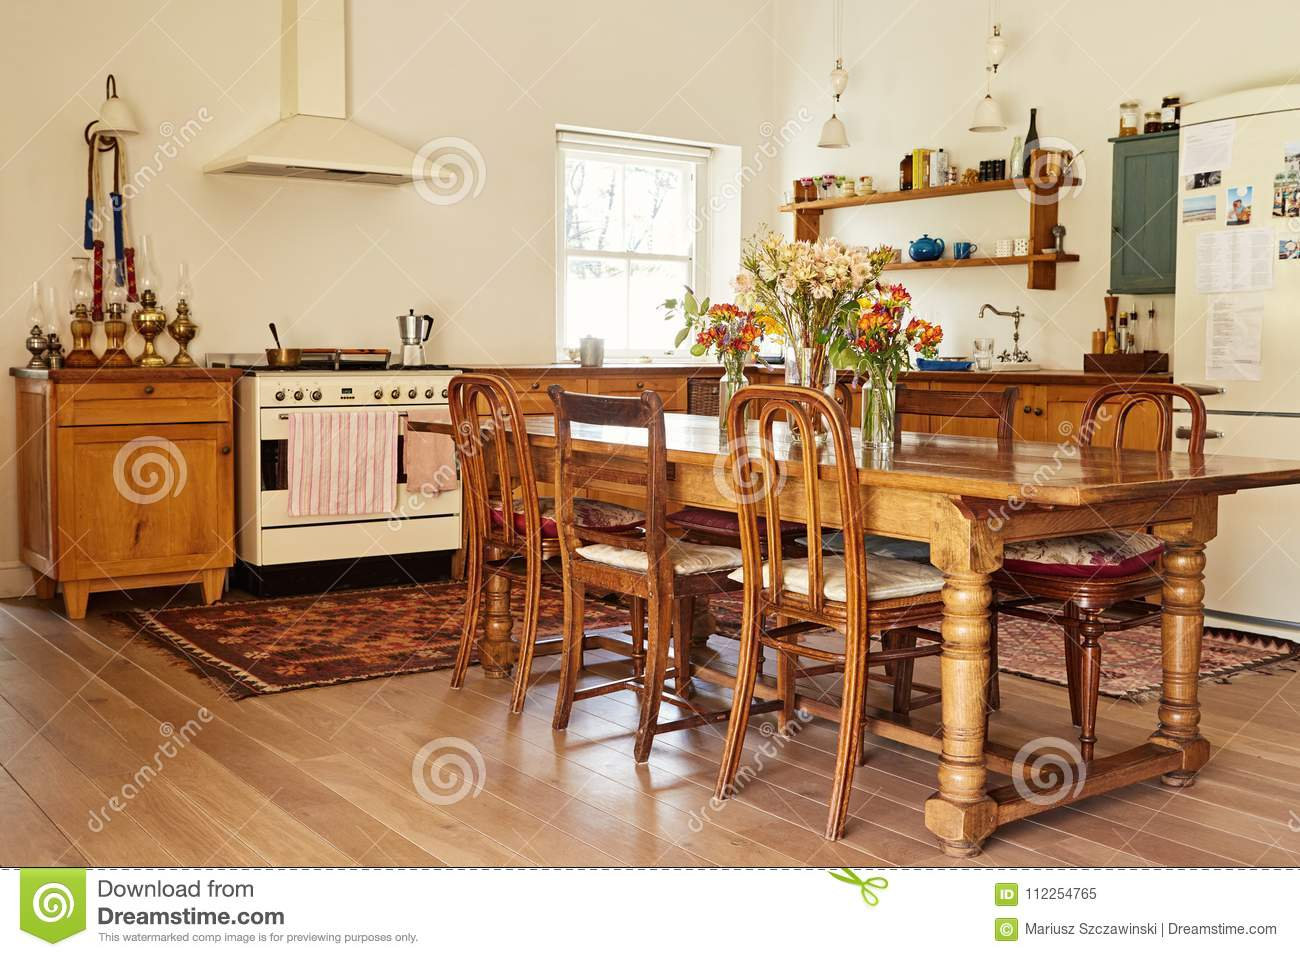 Picture of: Dining Area And Kitchen In A Country Style Home Stock Image Image Of Cupboard Decor 112254765